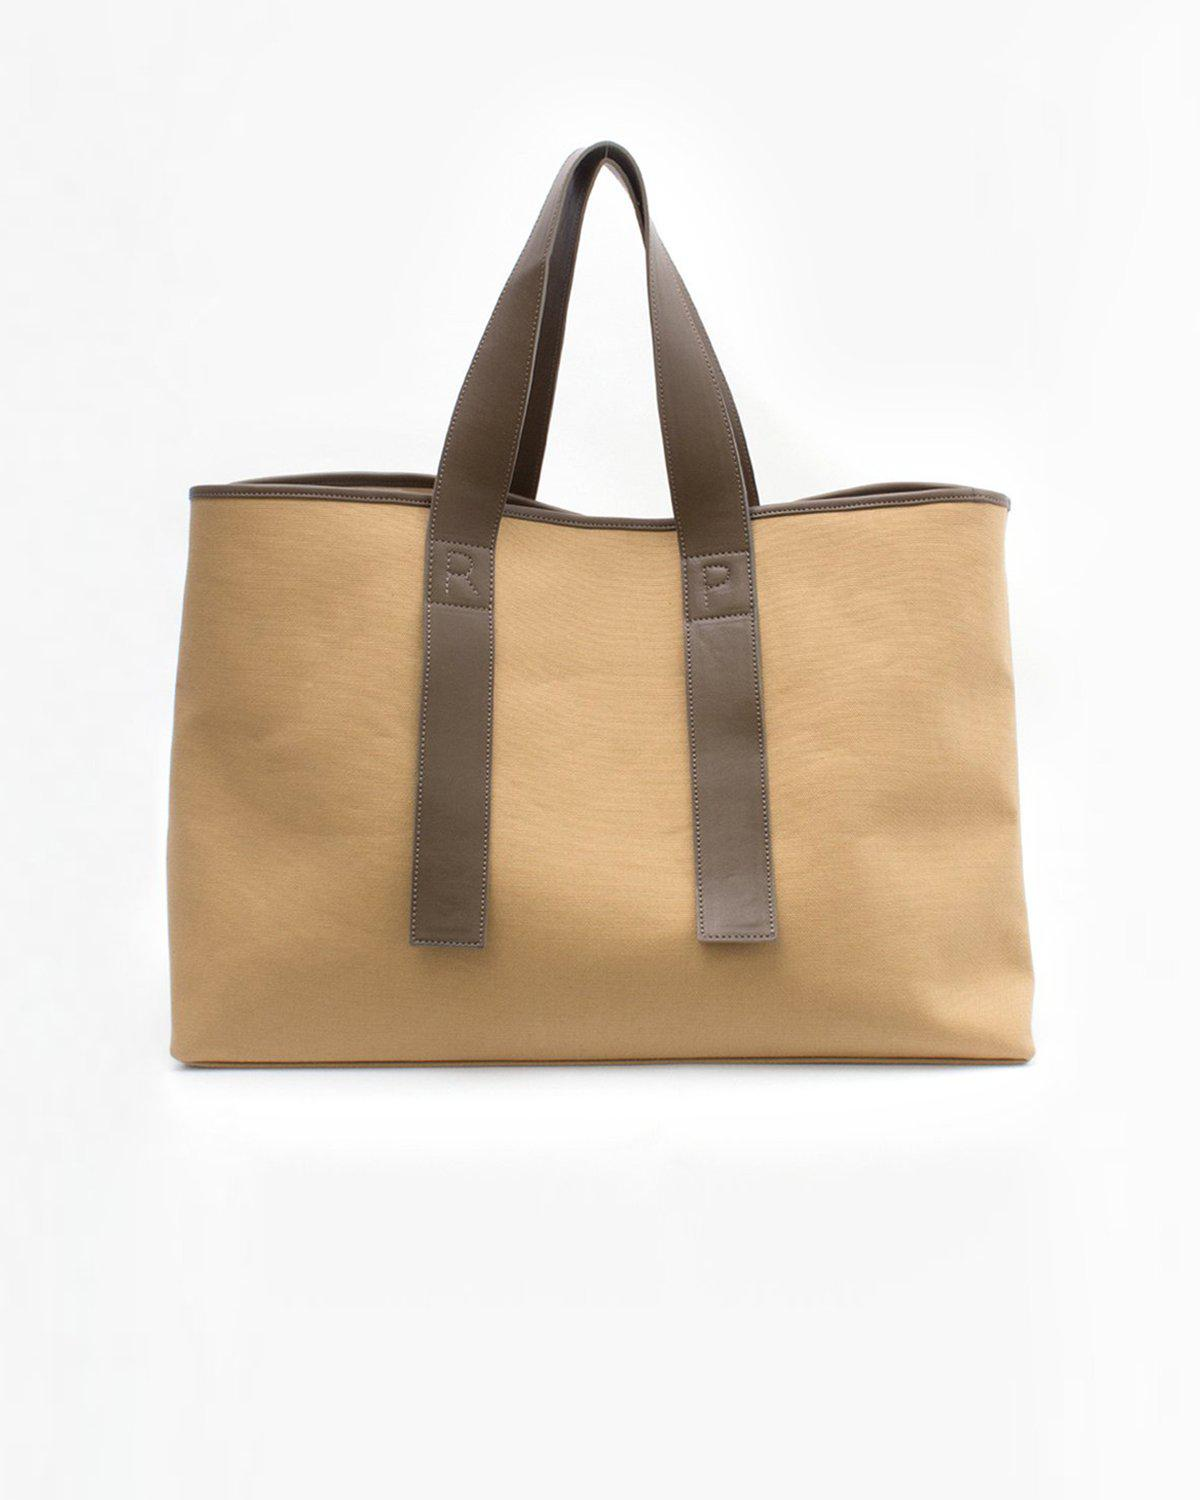 Carter Tote Canvas Beige Body + Faux Leather Brown Strap